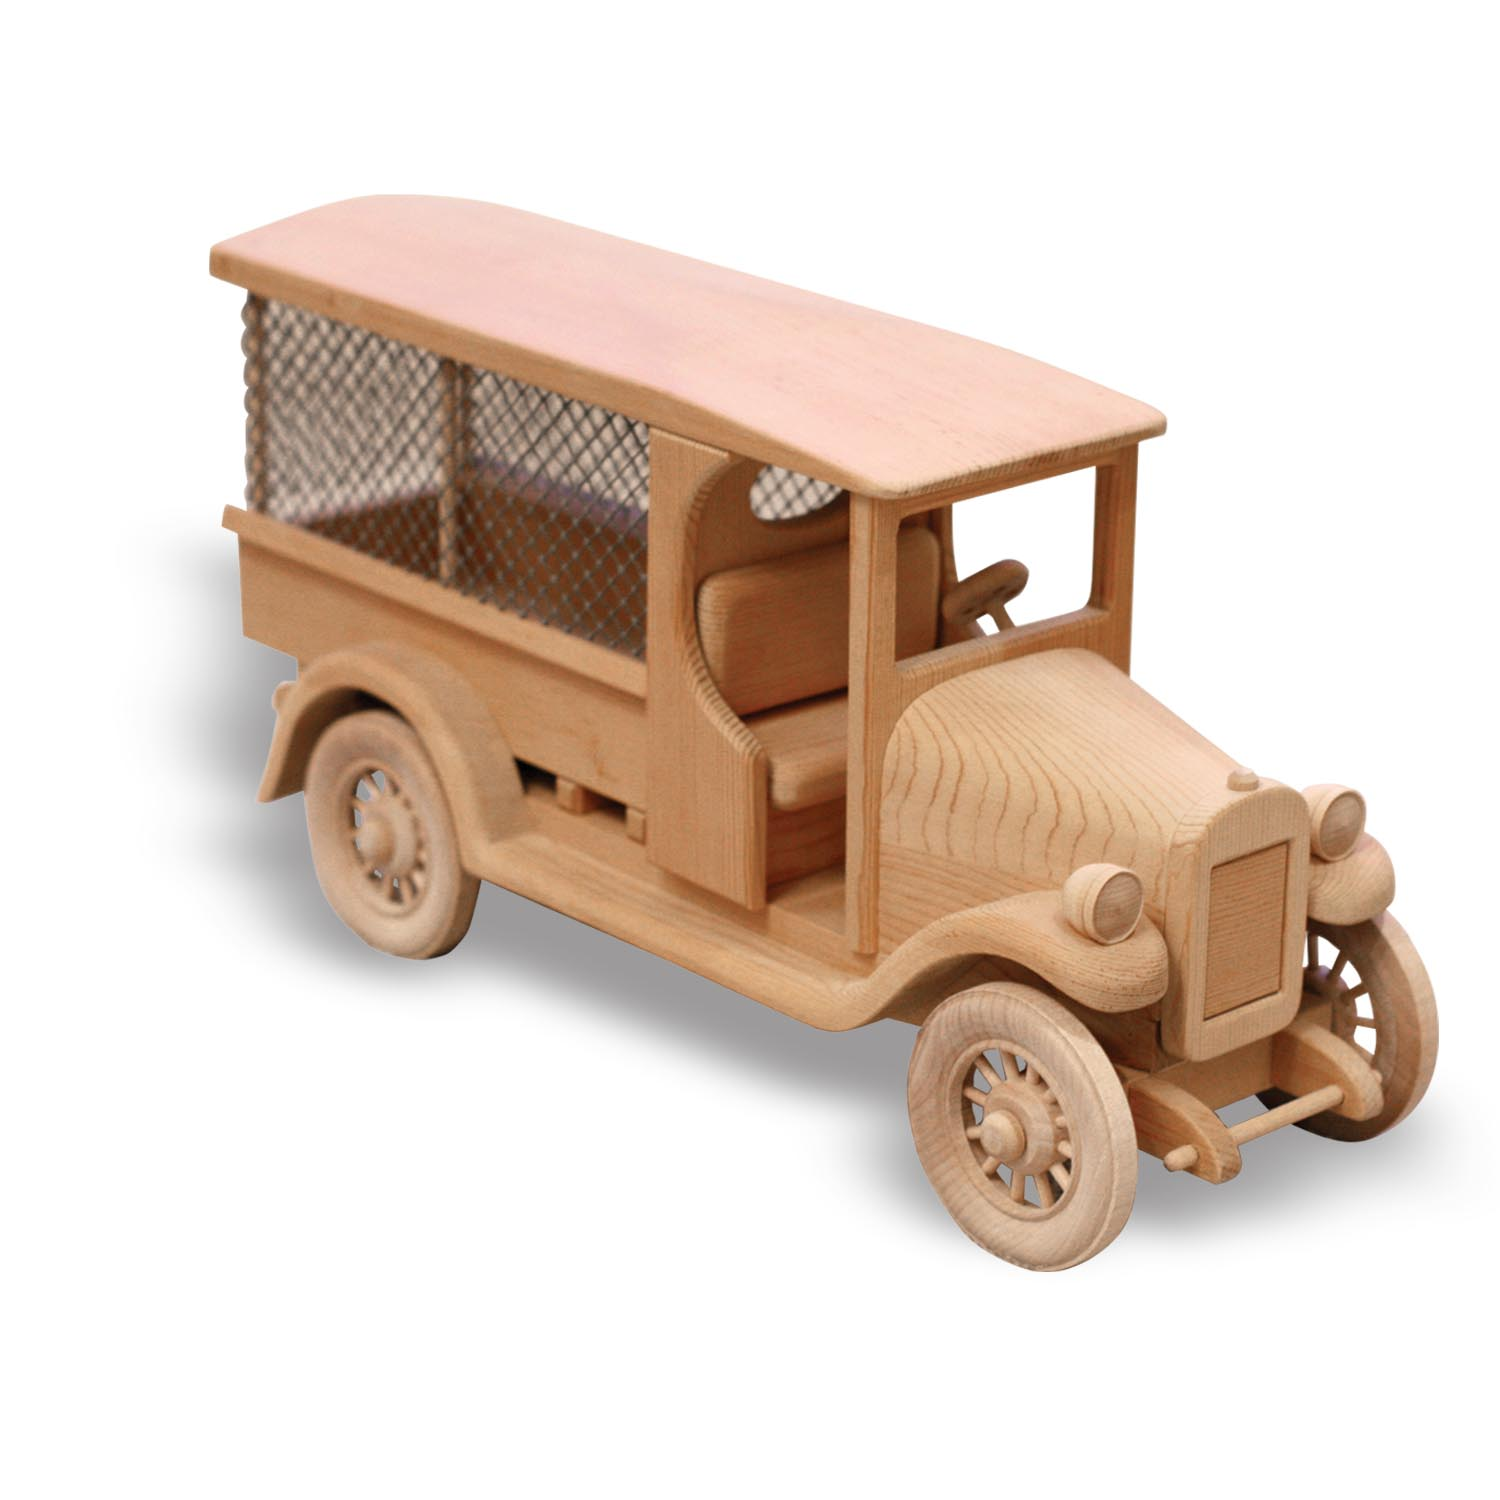 Wooden Toy Train Patterns : Patterns kits trucks railroad baggage car